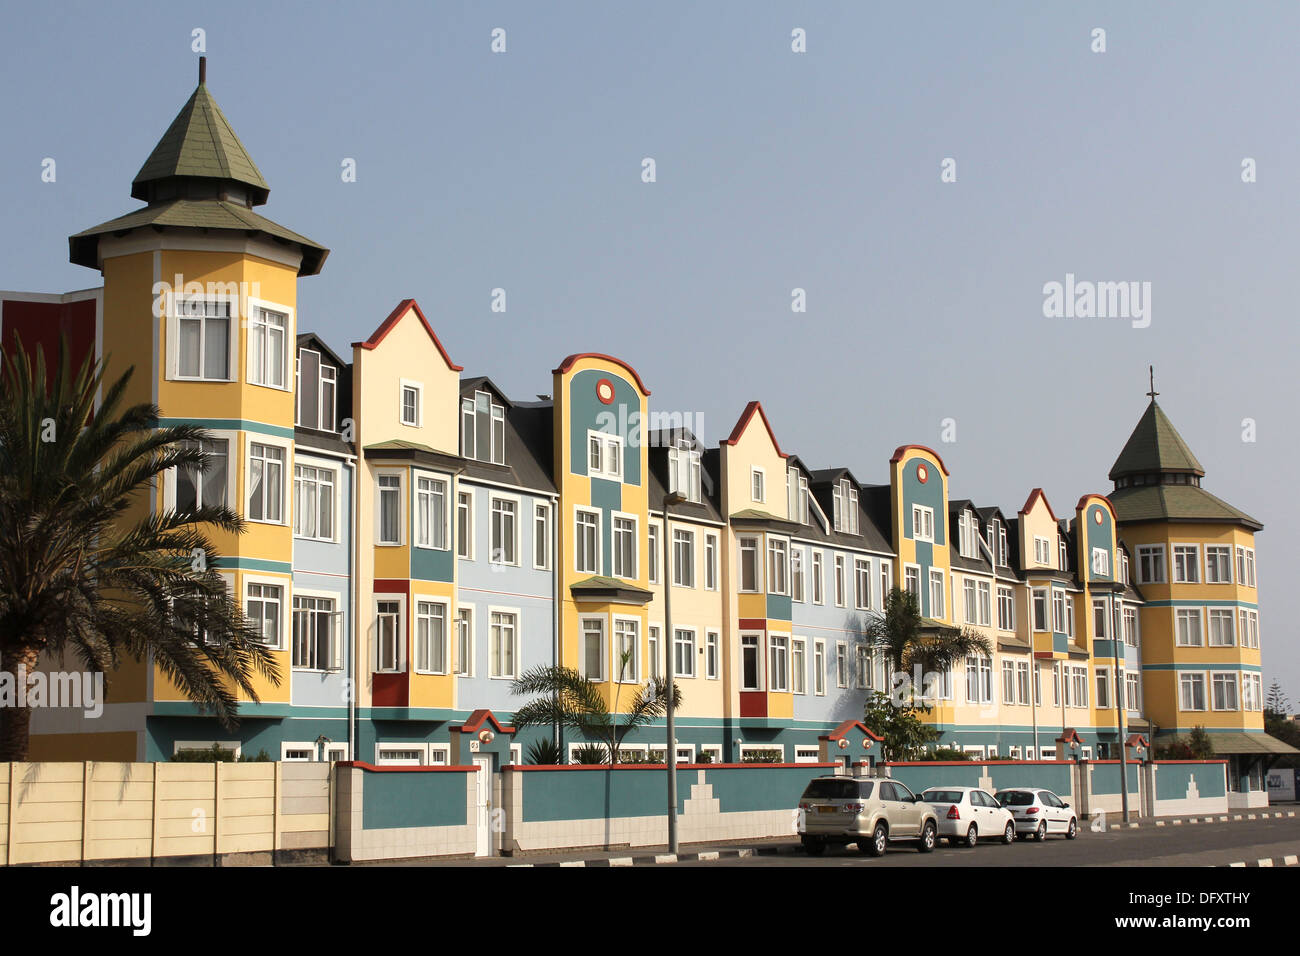 Block of German colonial buildings in Swakopmund,Namibia. - Stock Image